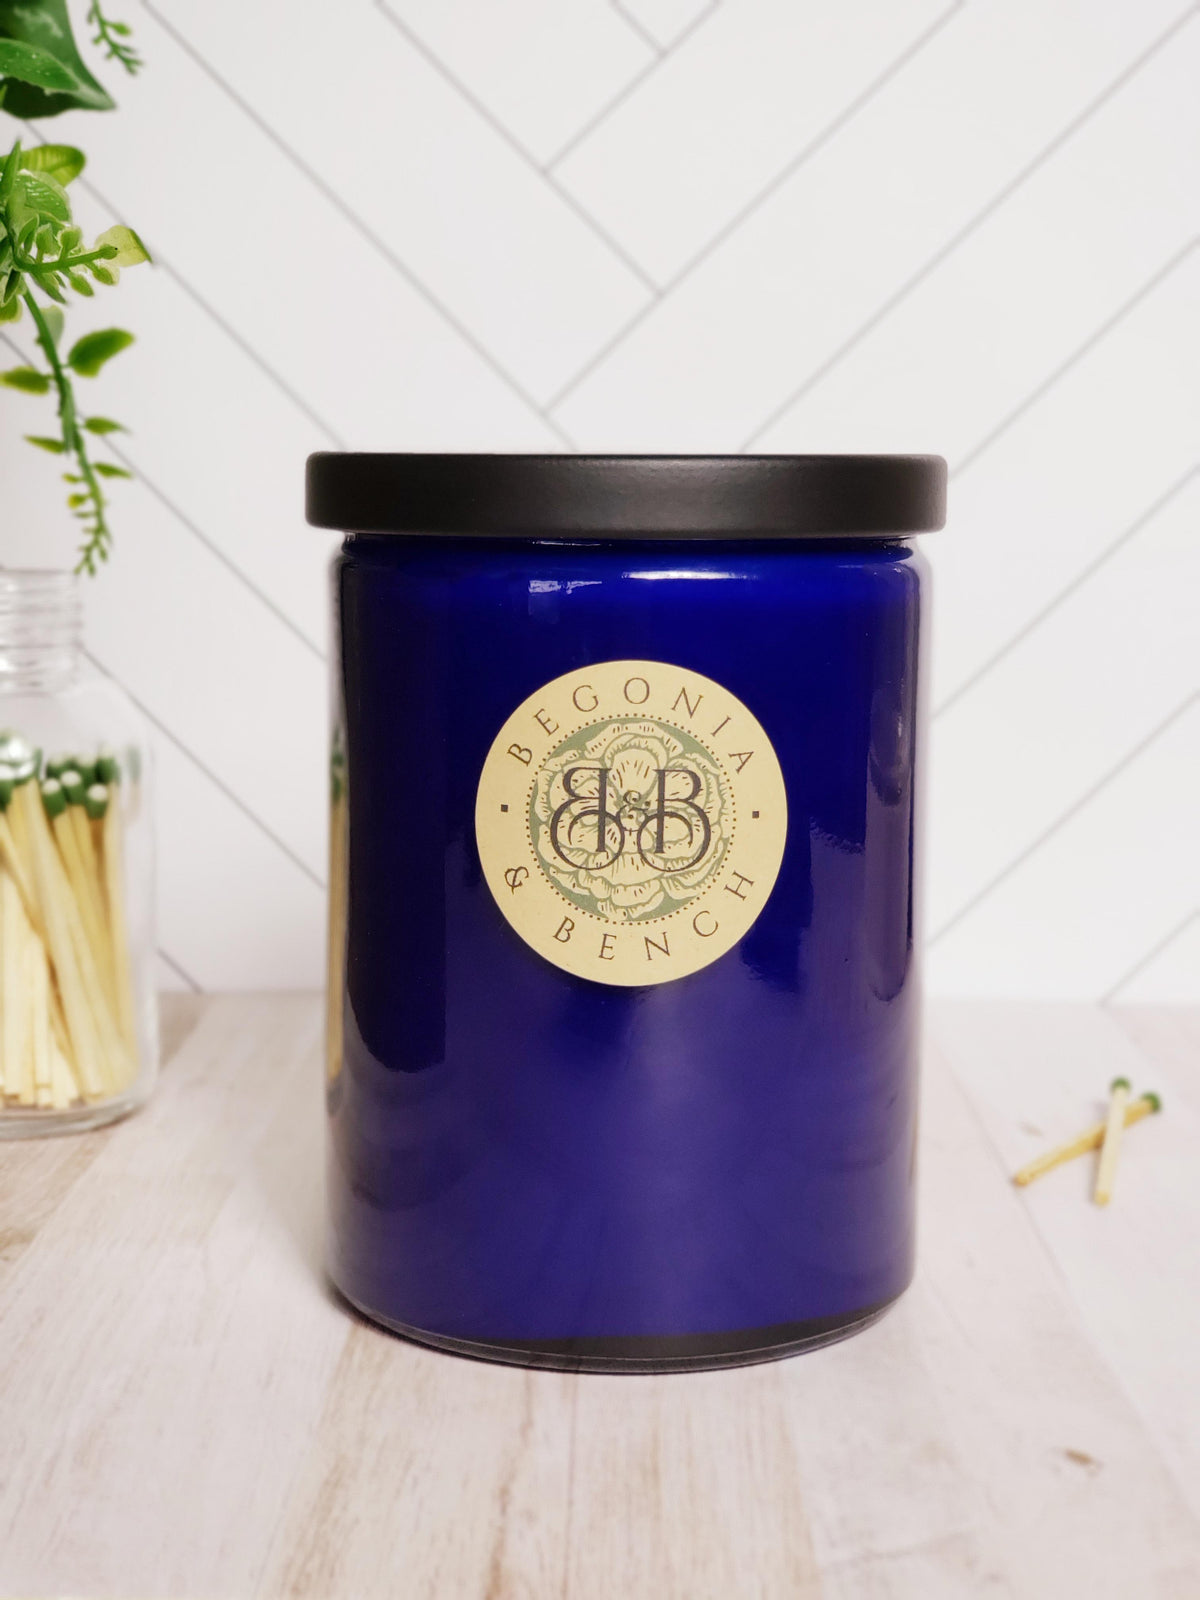 remium Botanical Wax Candle. Signature Collection Candle in Cobalt Blue, size Grand - with a Black Metal Lid.